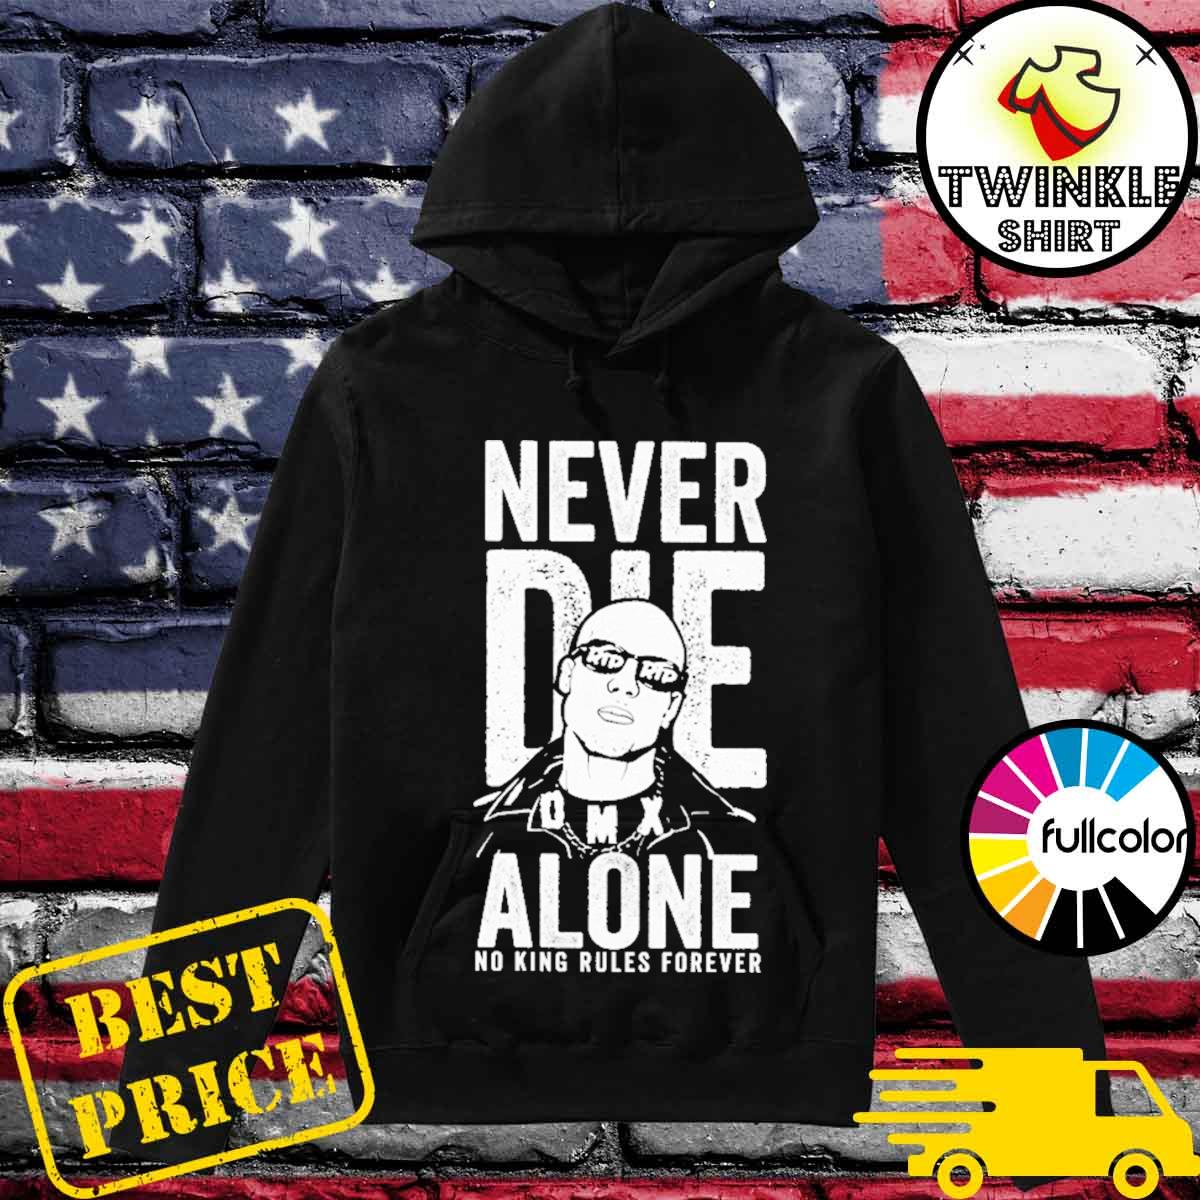 Official Rip DMX Never Die Alone No King Rules Forever Shirt Hoodie